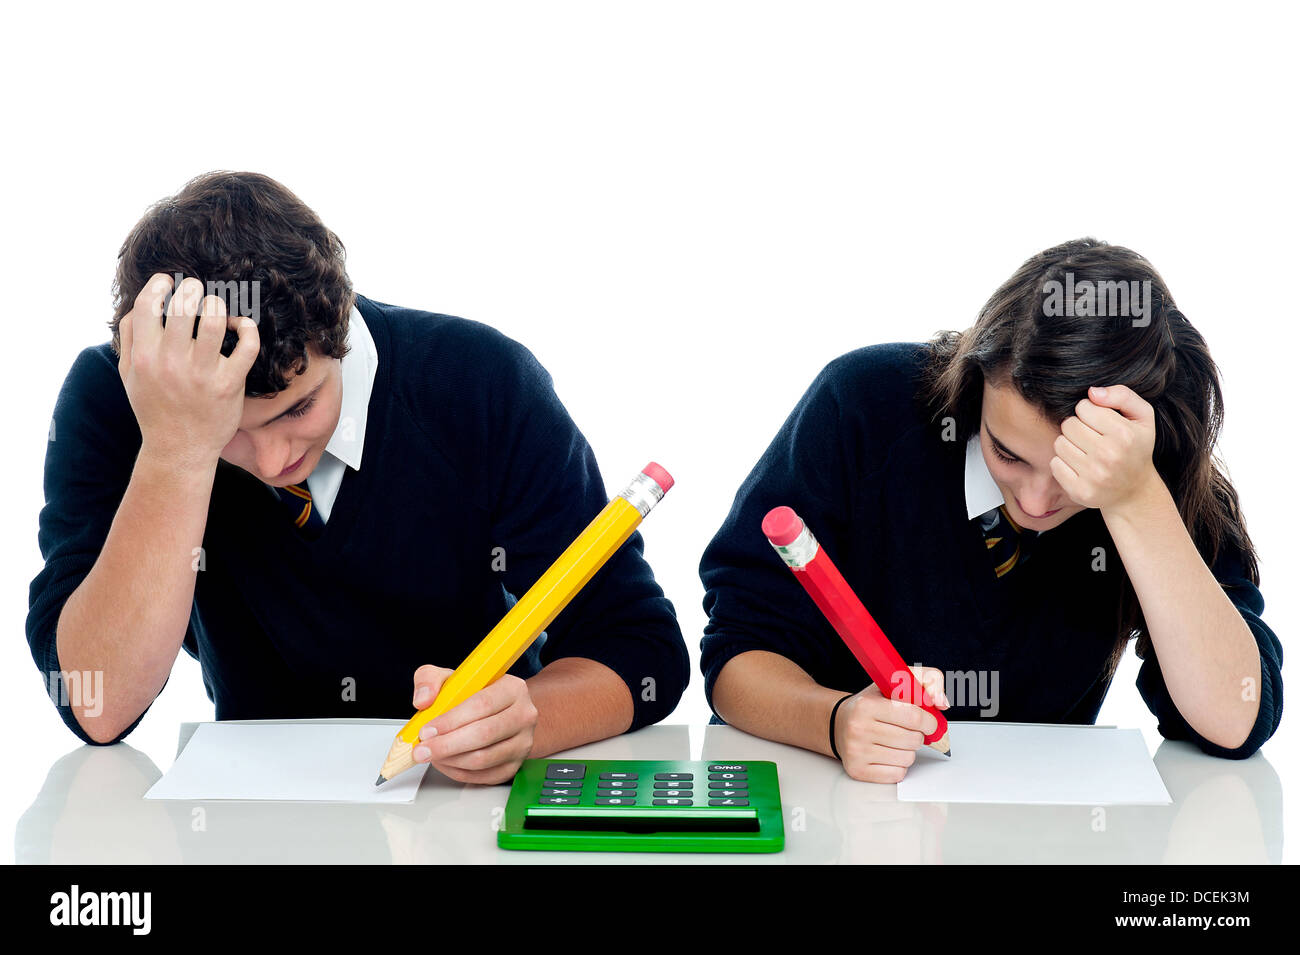 Students resting their arms on the desk, holding head and trying to recollect the answer - Stock Image